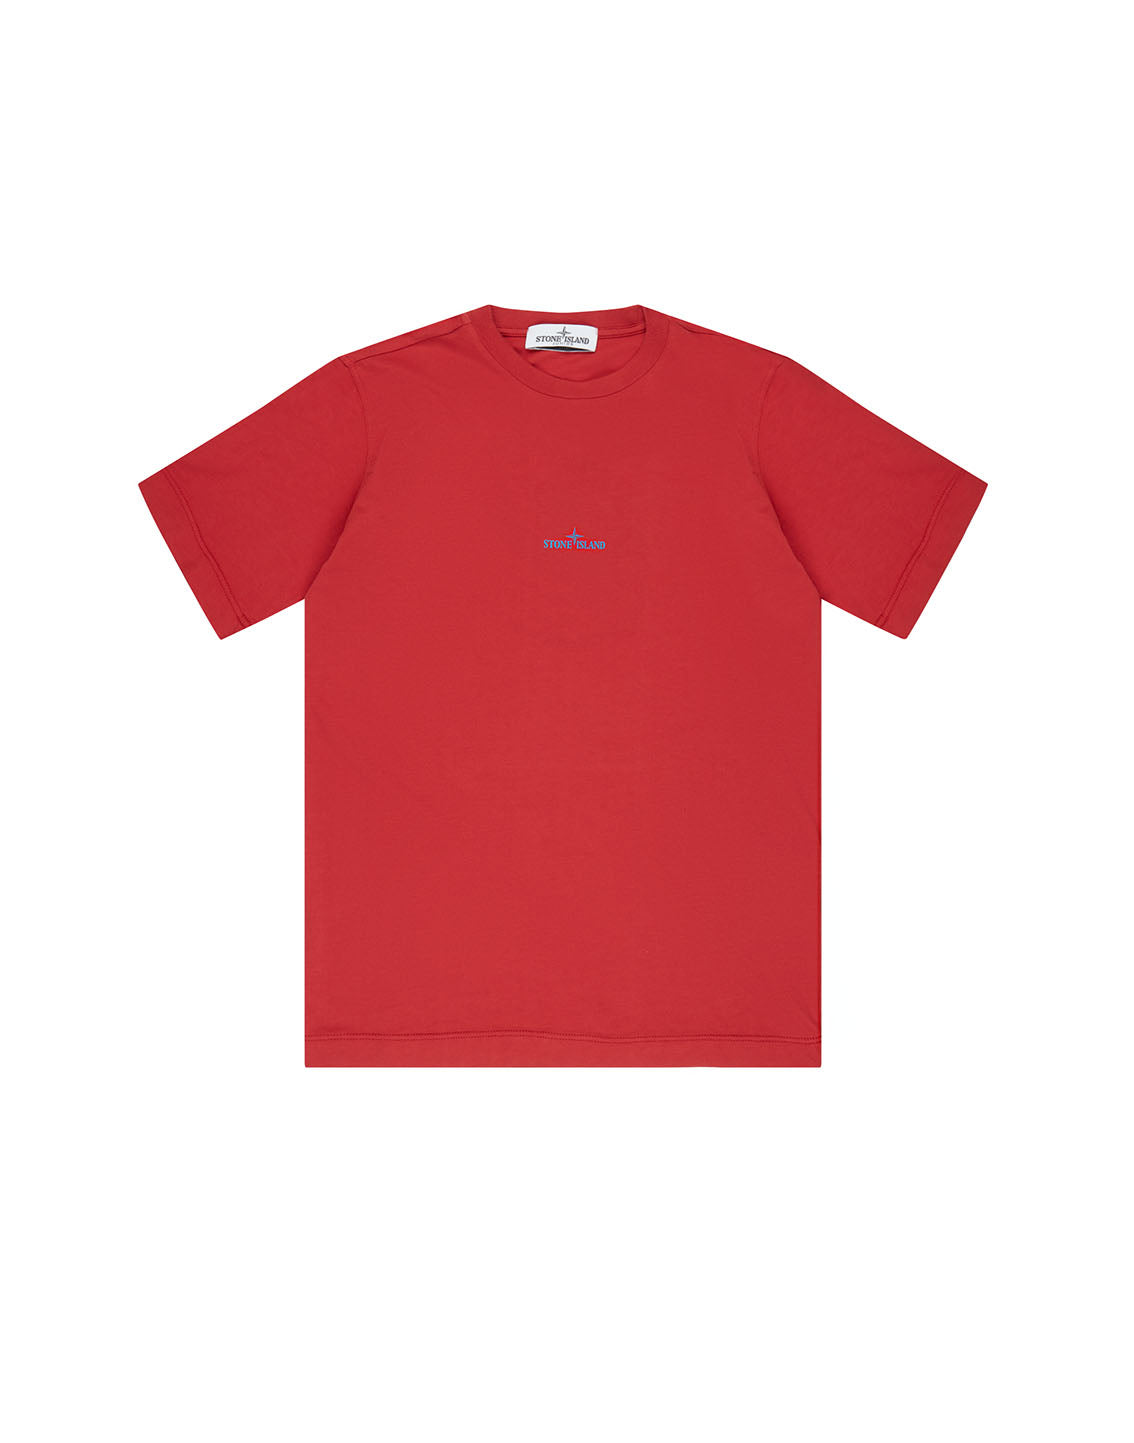 21452 Logo T-Shirt in Red